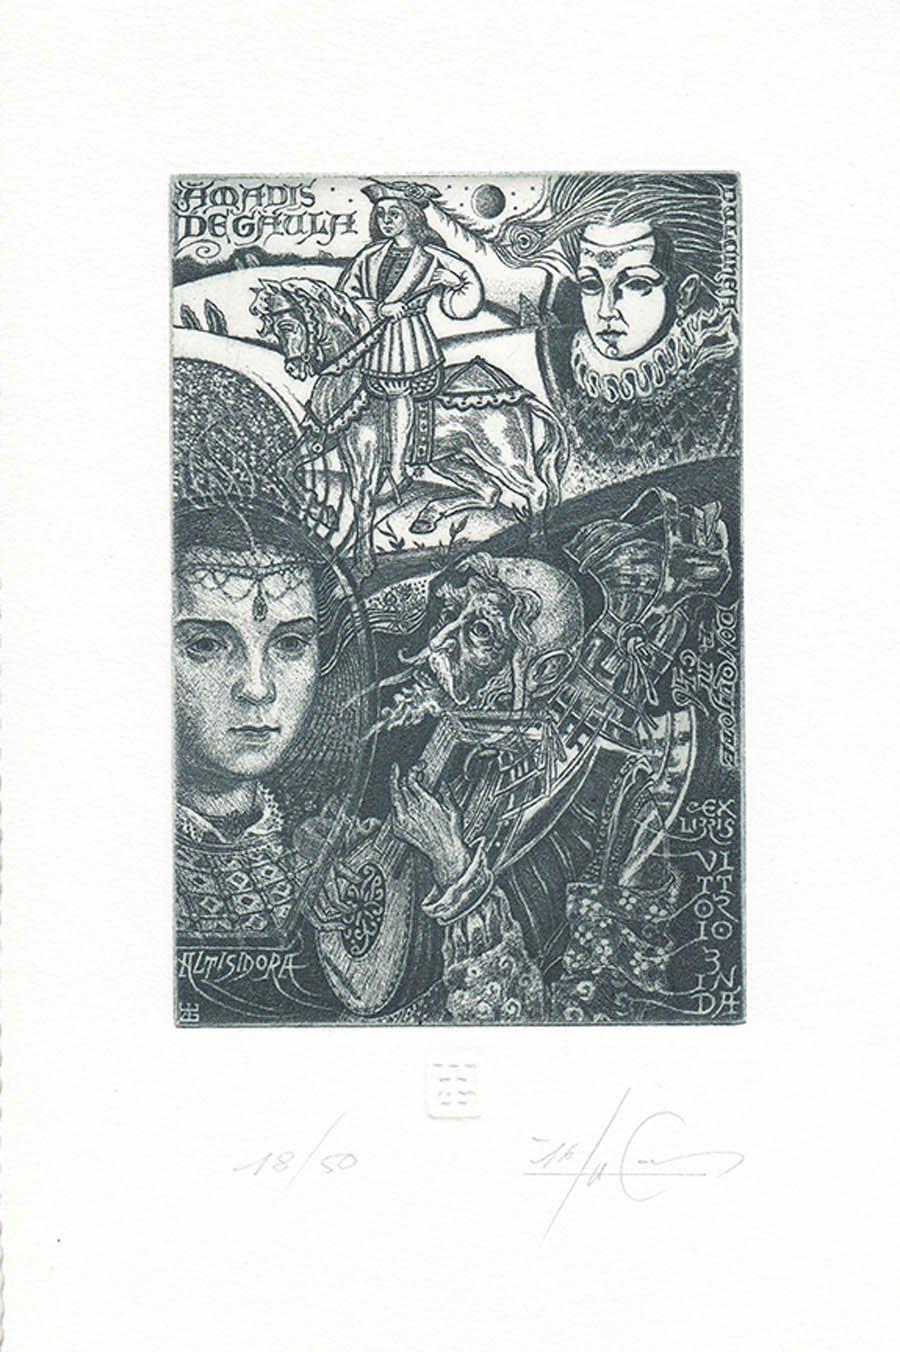 award winning ex libris art competition by don quijote